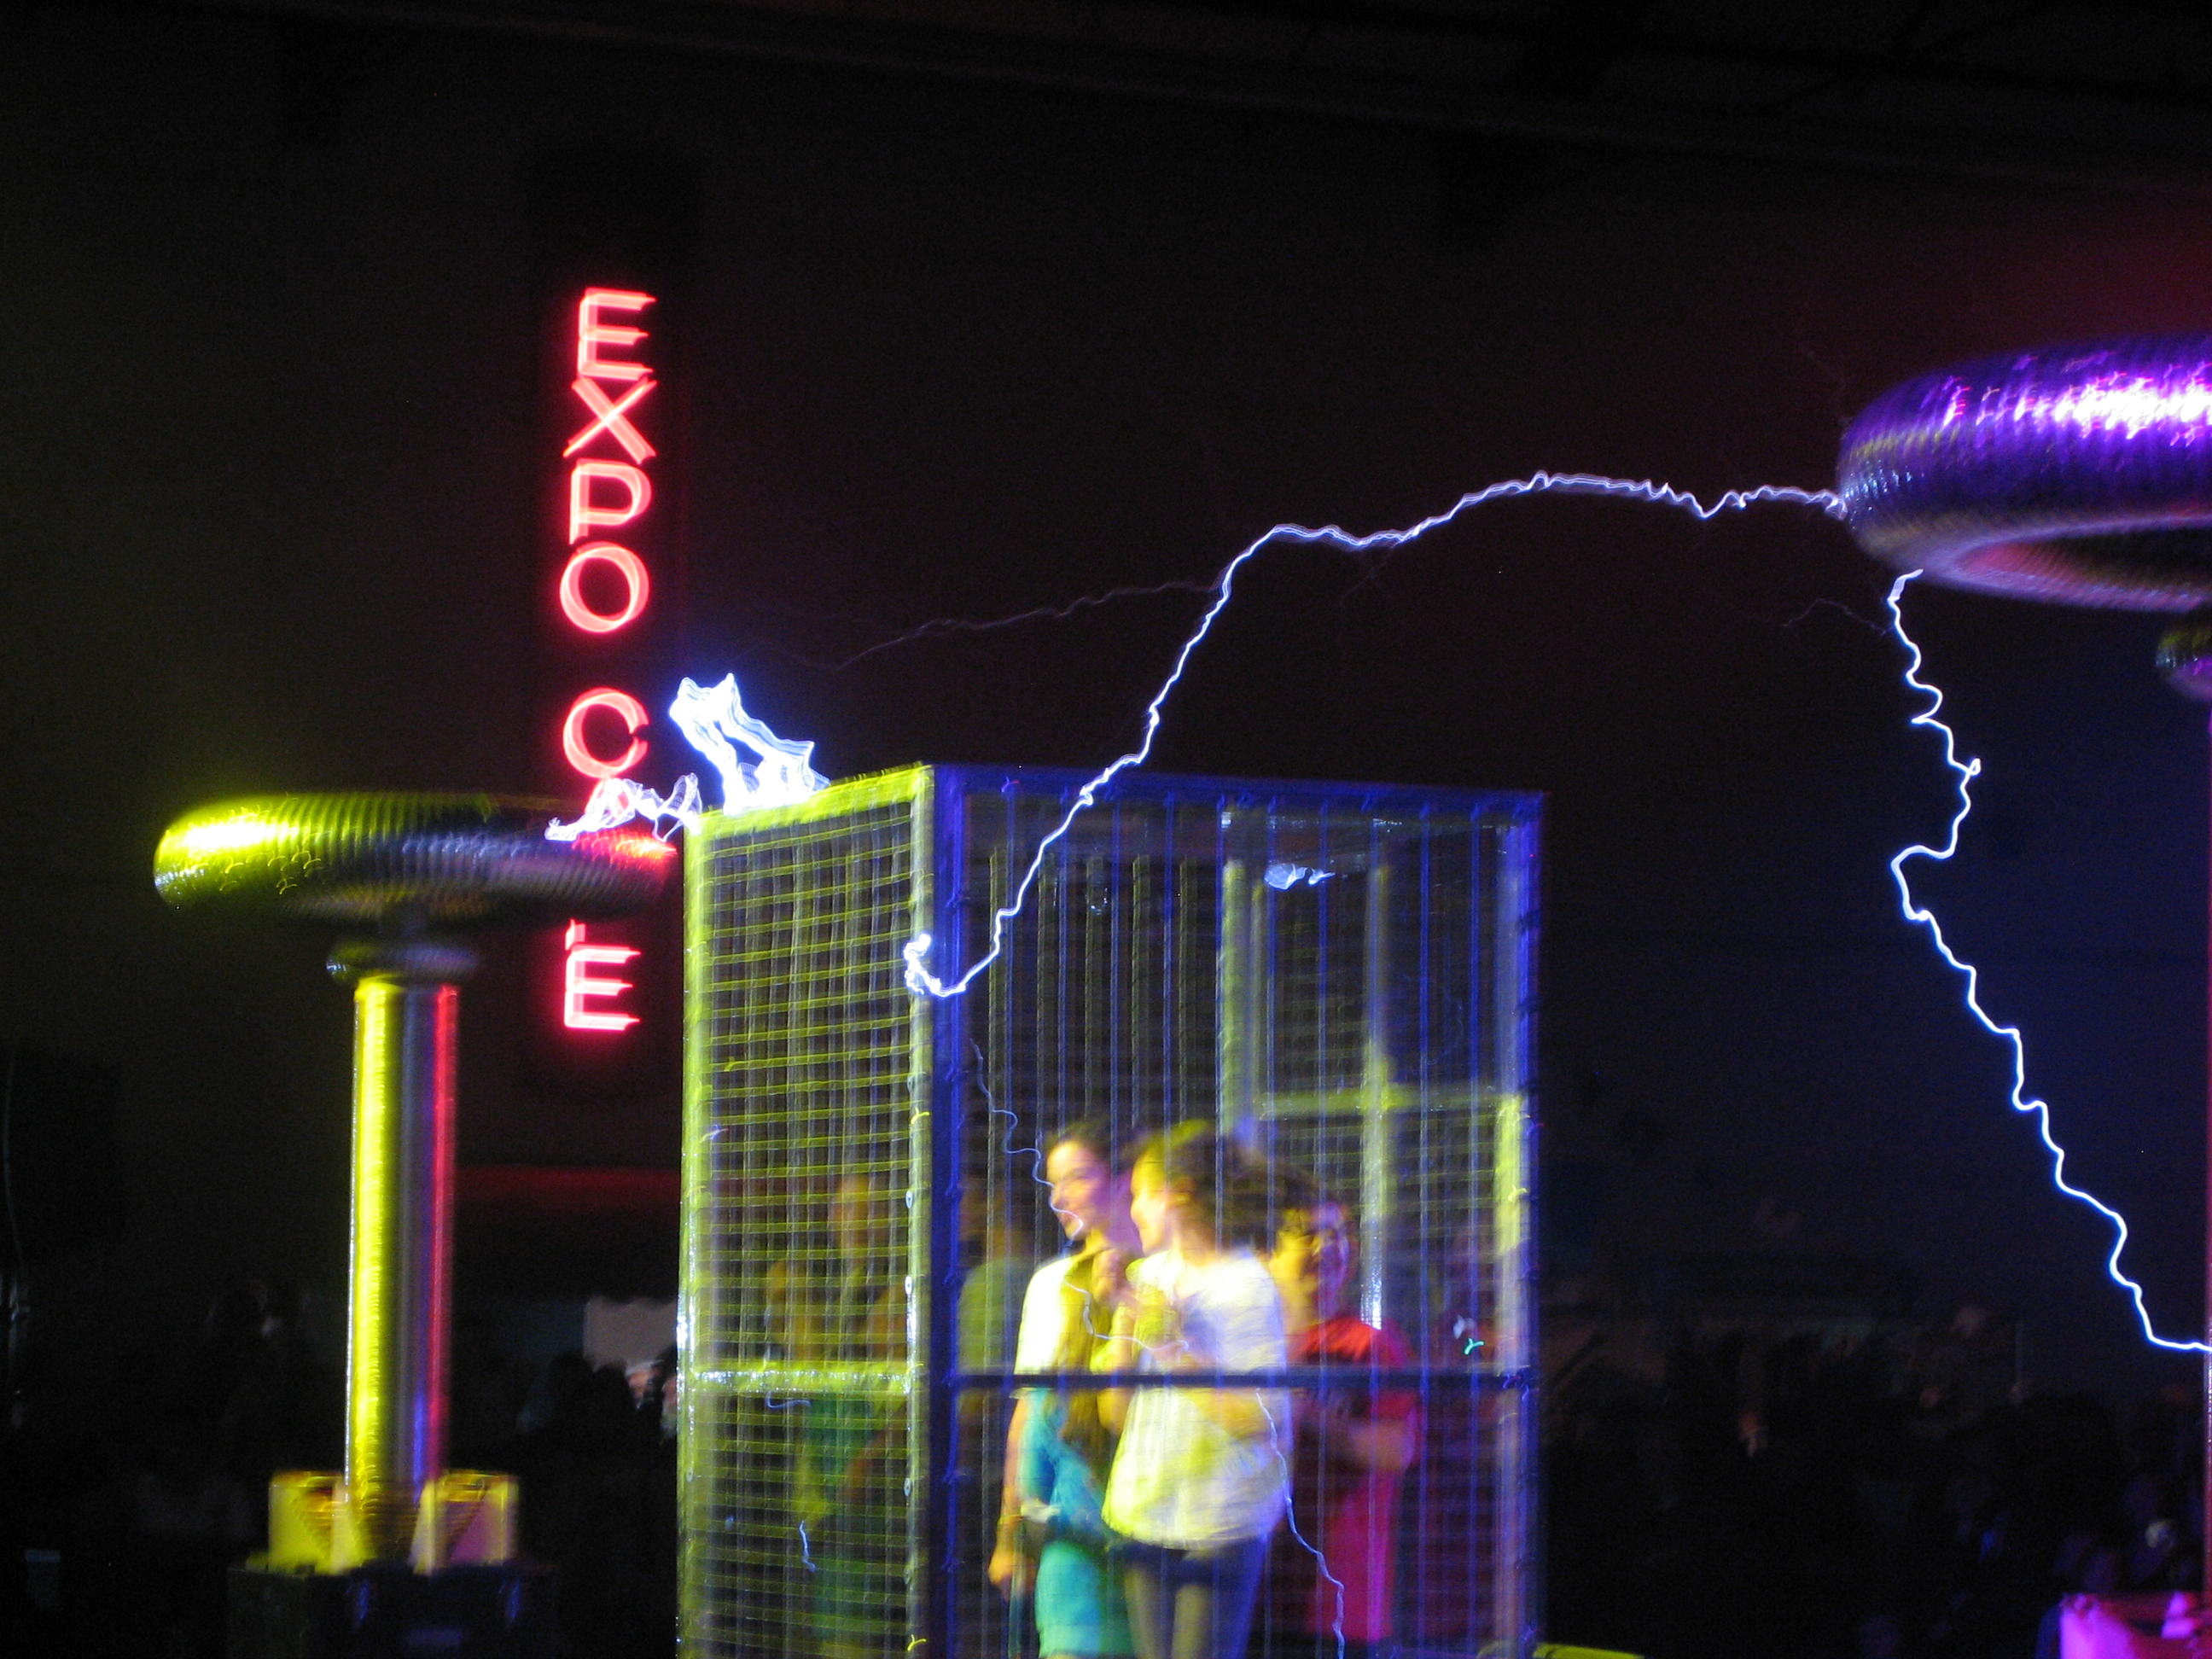 File Children In A Faraday Cage Getting Zapped By Tesla